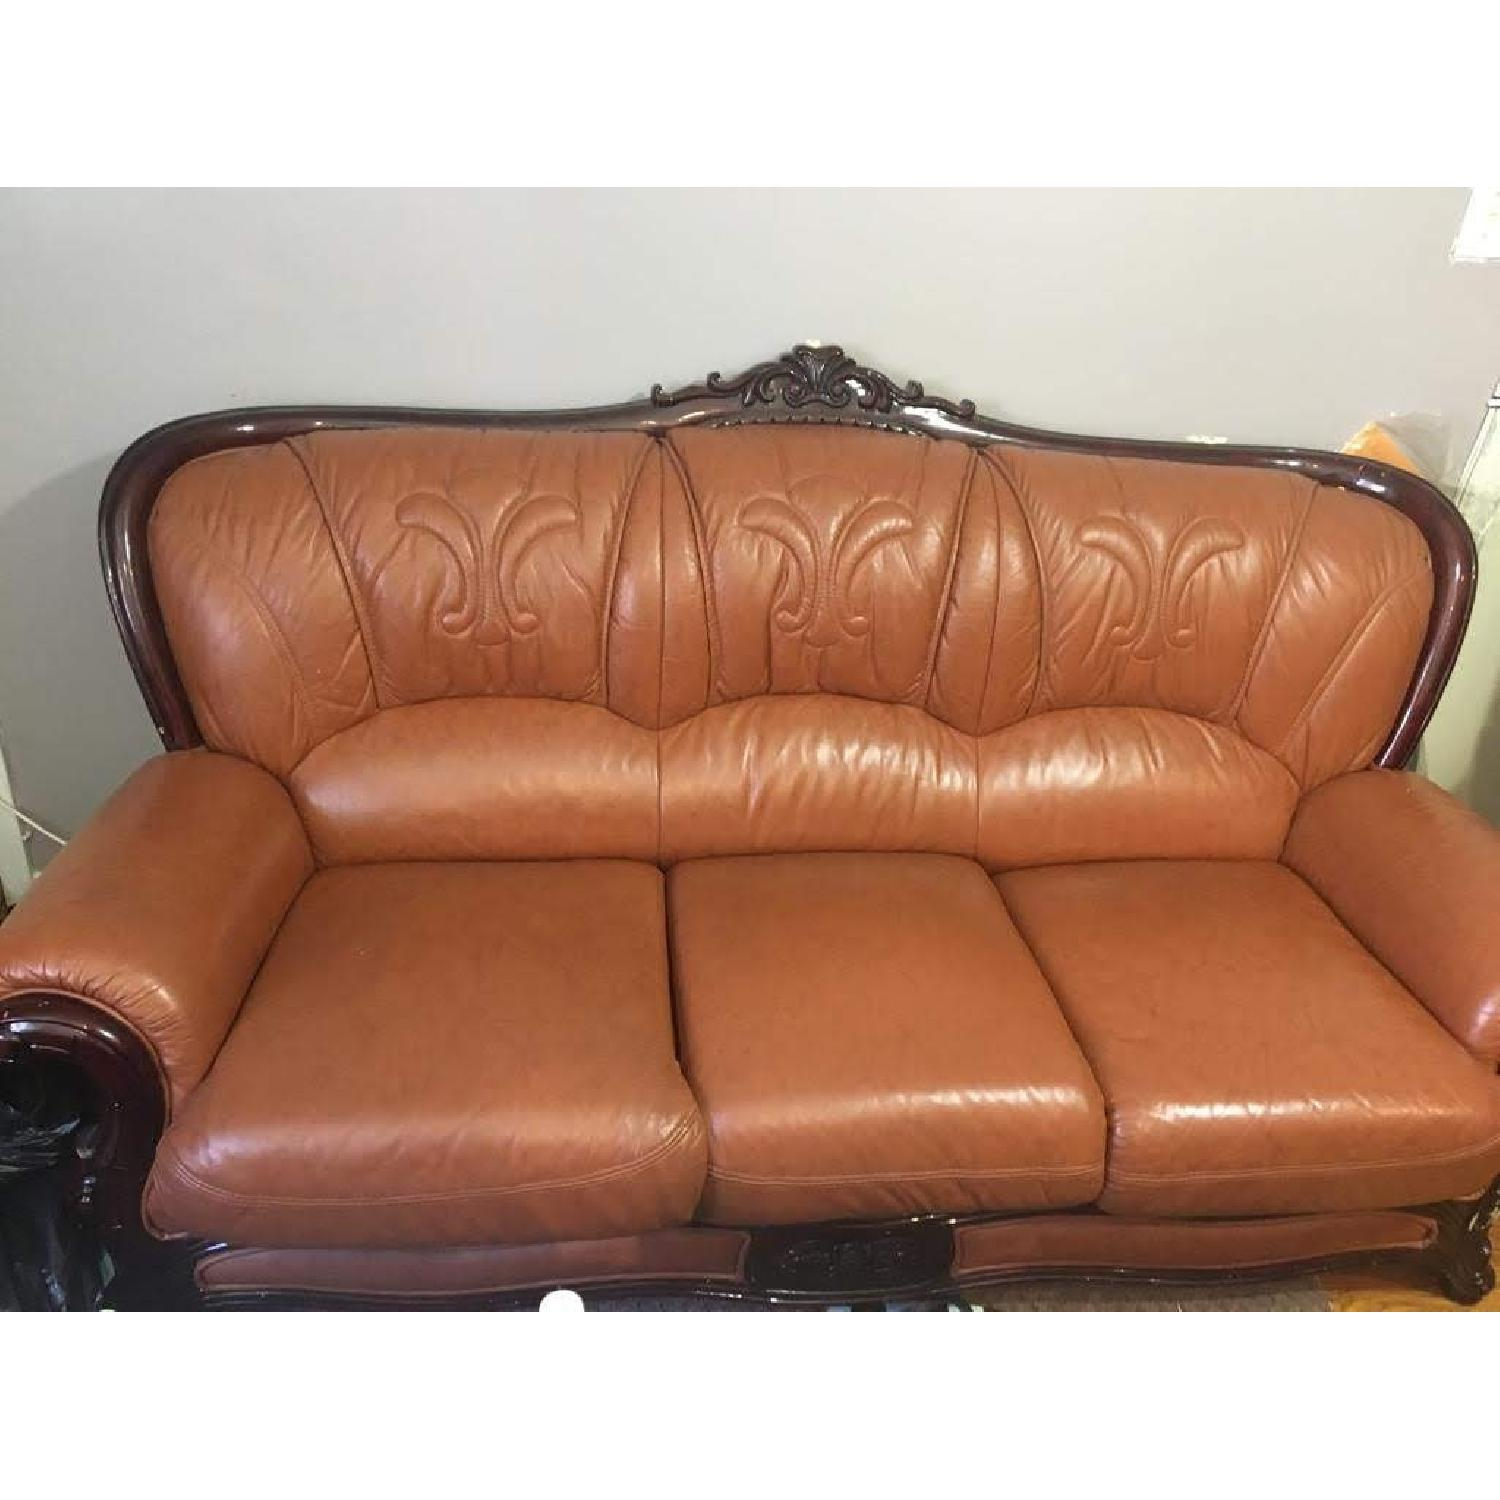 Leather Upholstered 3 Seater Sofa - image-3